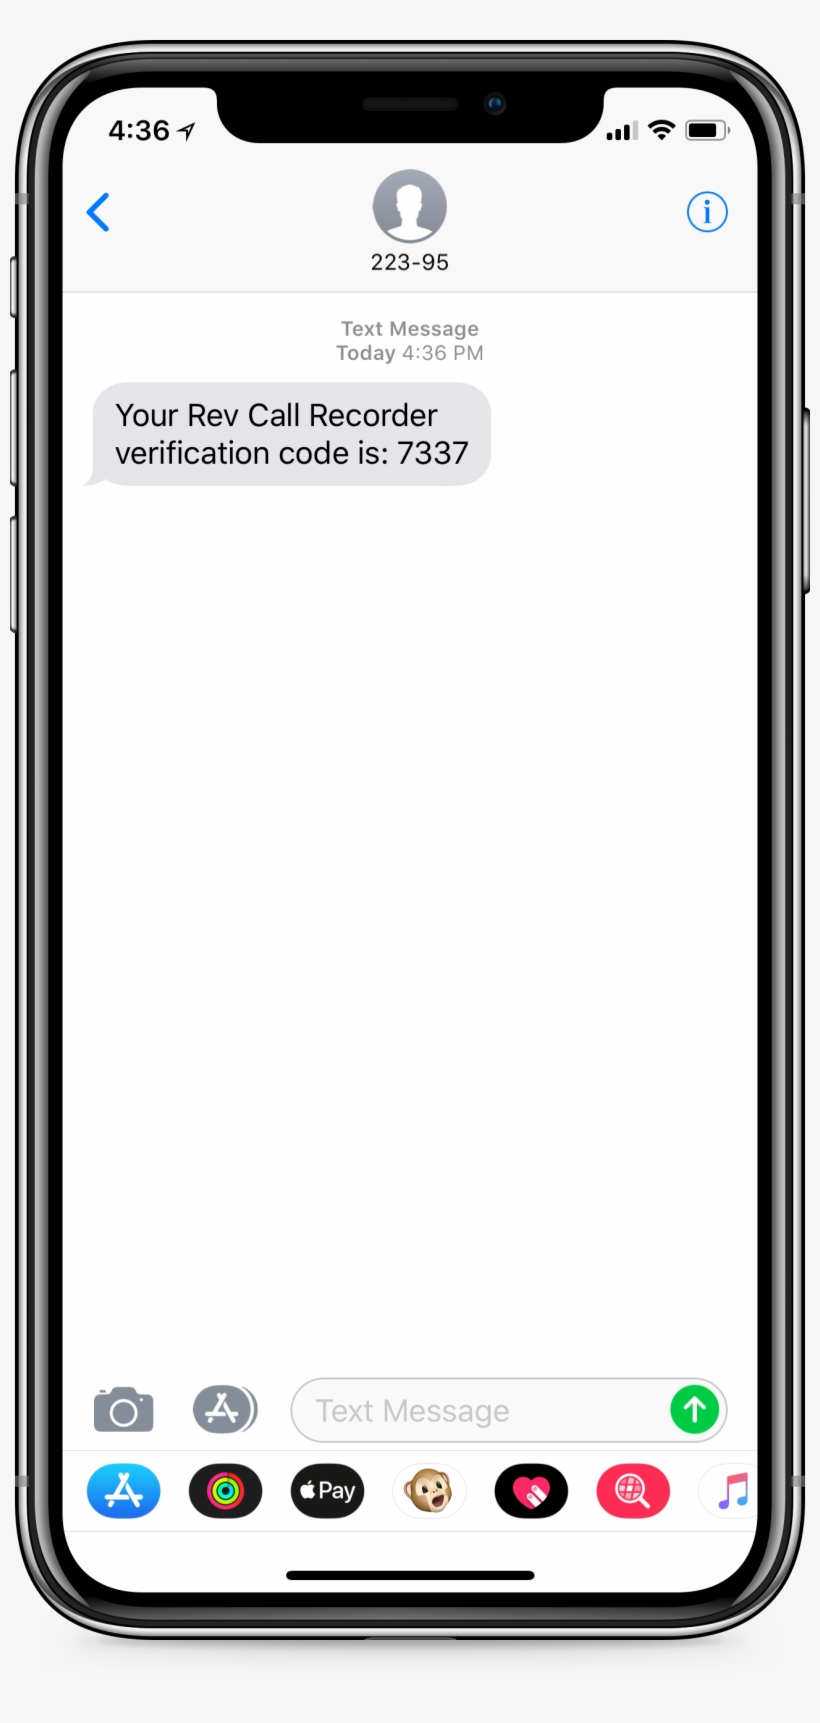 Iphone Screen With Text Reading